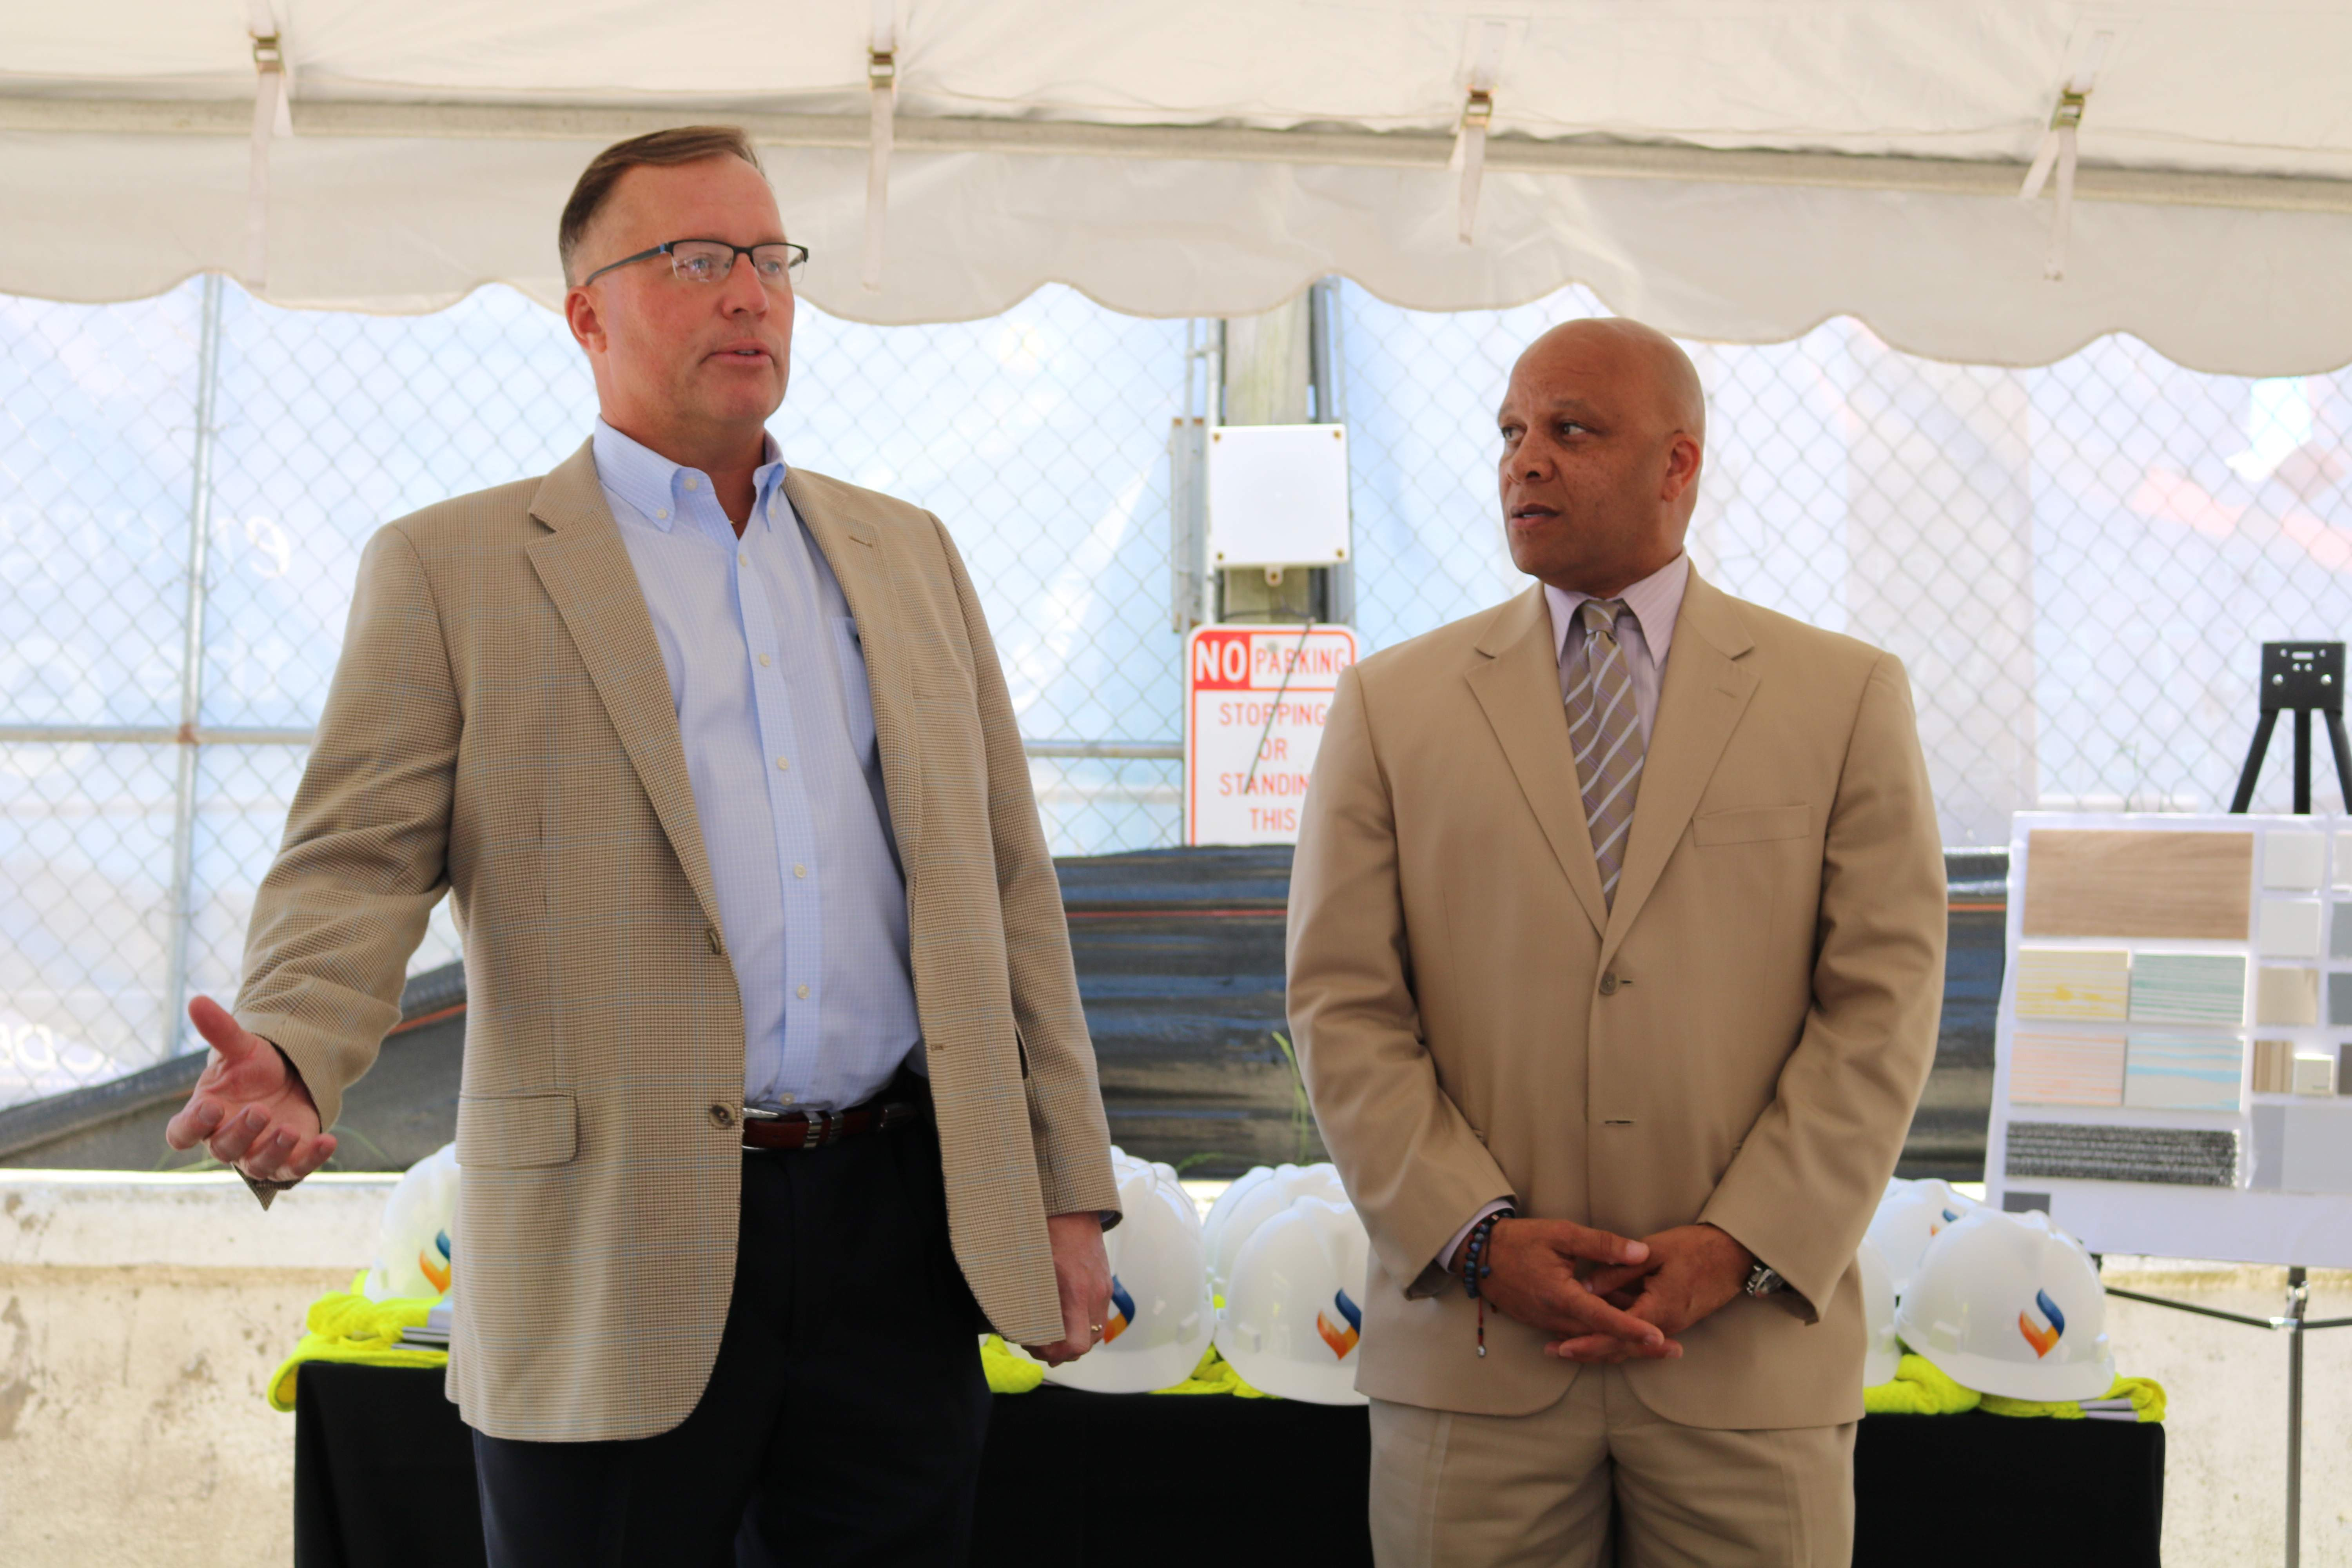 South Jersey Gas President Dave Robbins and Mayor of Atlantic City Frank Gilliam Jr. speak to guests prior to the hard hat tour of the new South Jersey Gas headquarters, currently under construction.